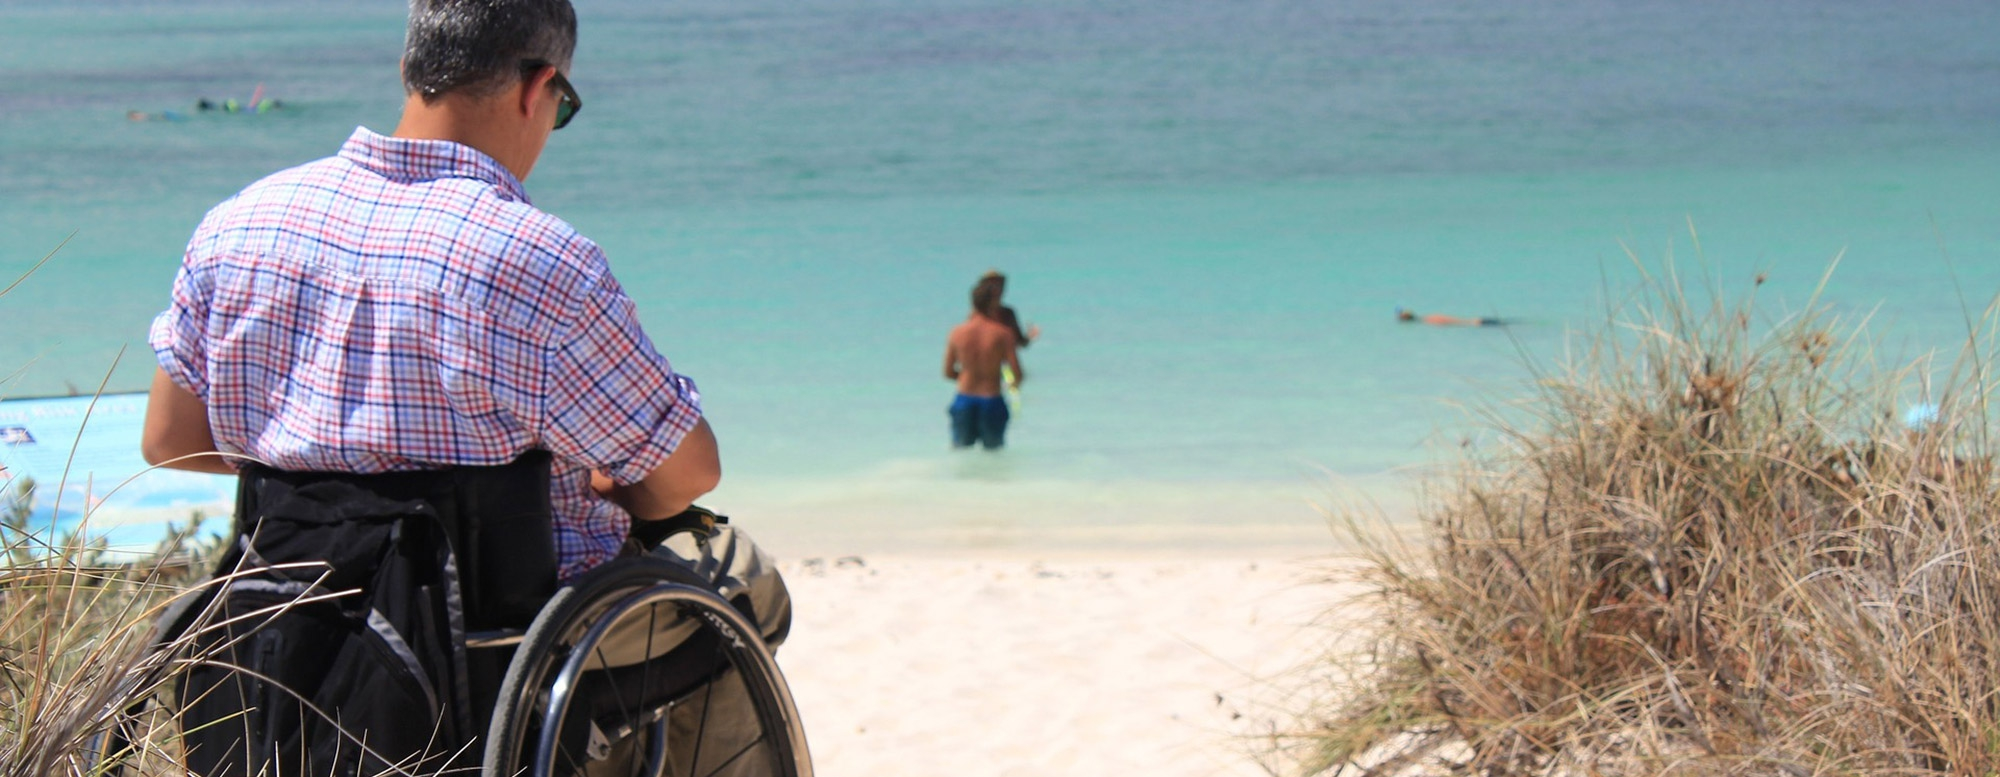 Holiday homes for disabled people and their families